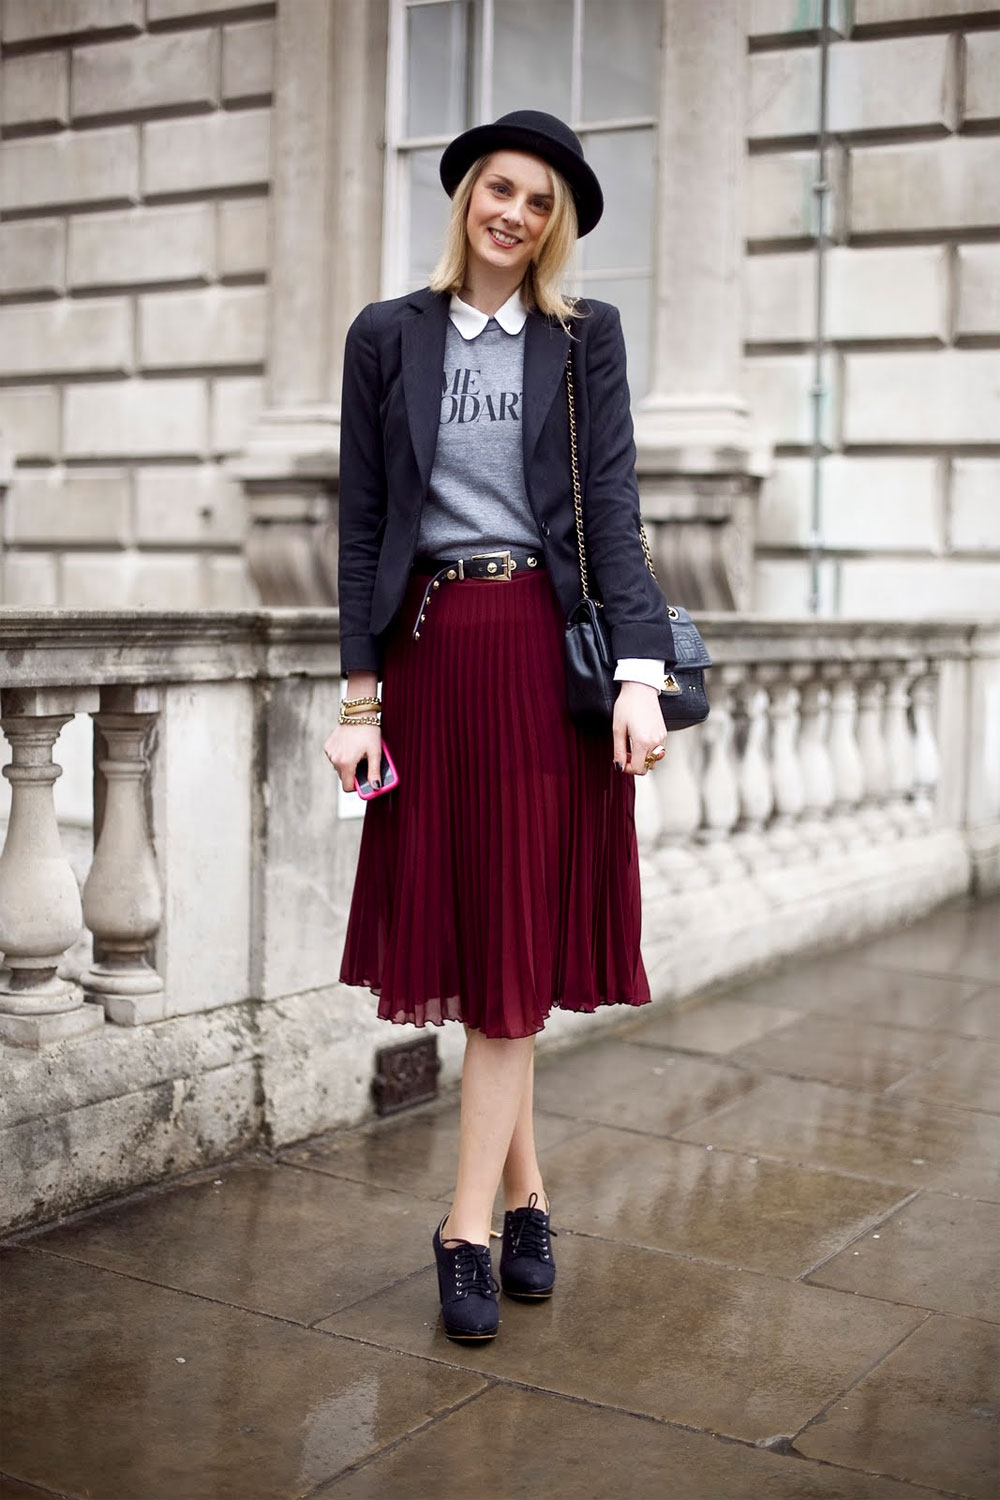 Pleated skirt outfit